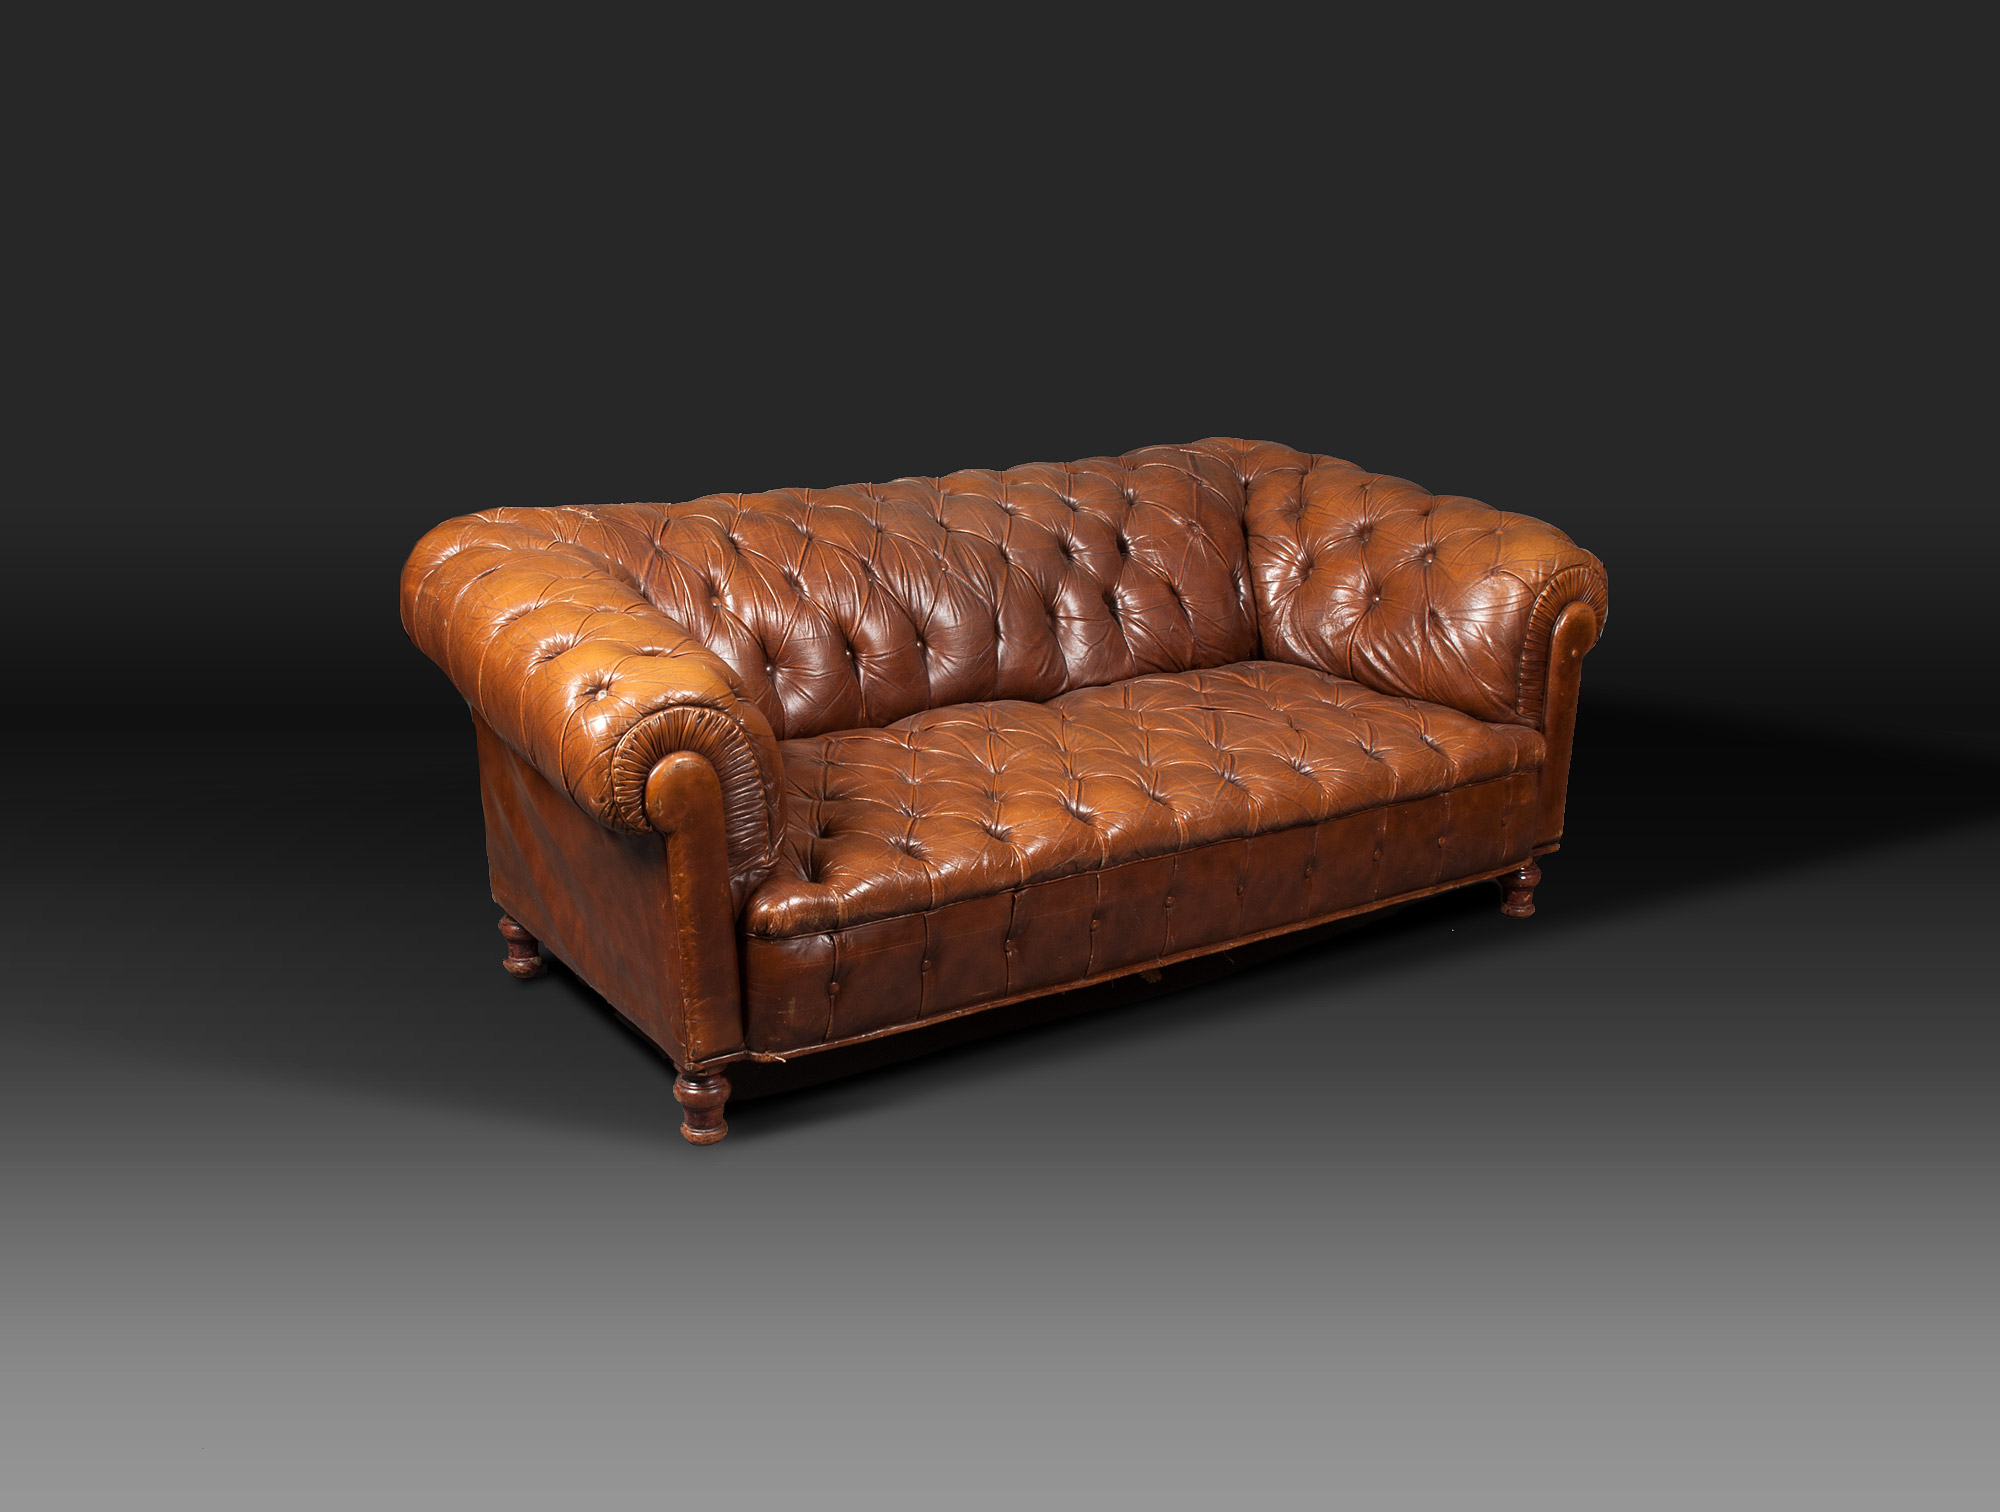 Salon chesterfield en cuir roux soubrier louer si ges - Salon chesterfield cuir ...